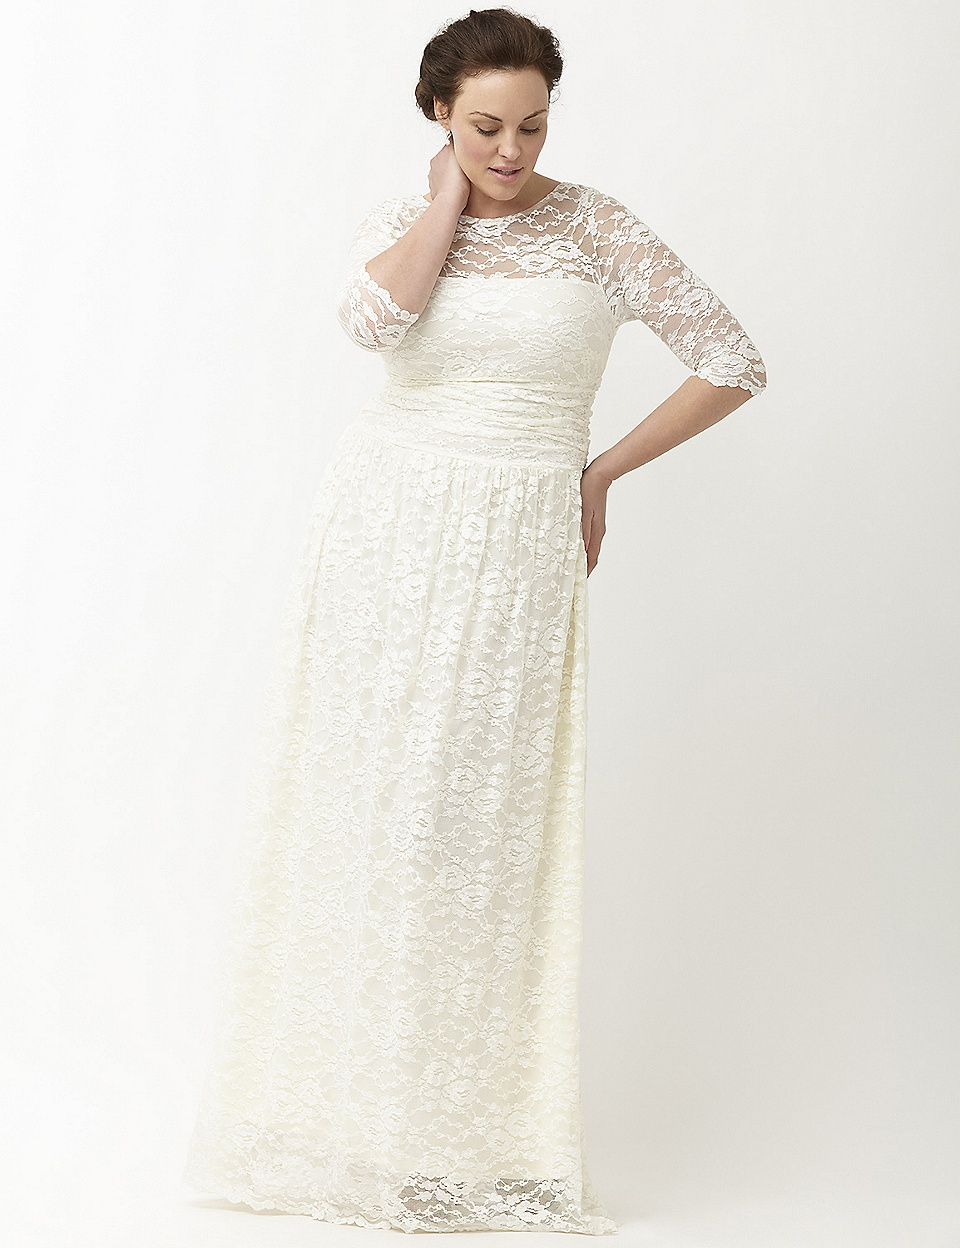 Lace Illusion Wedding Gown By Kiyonna